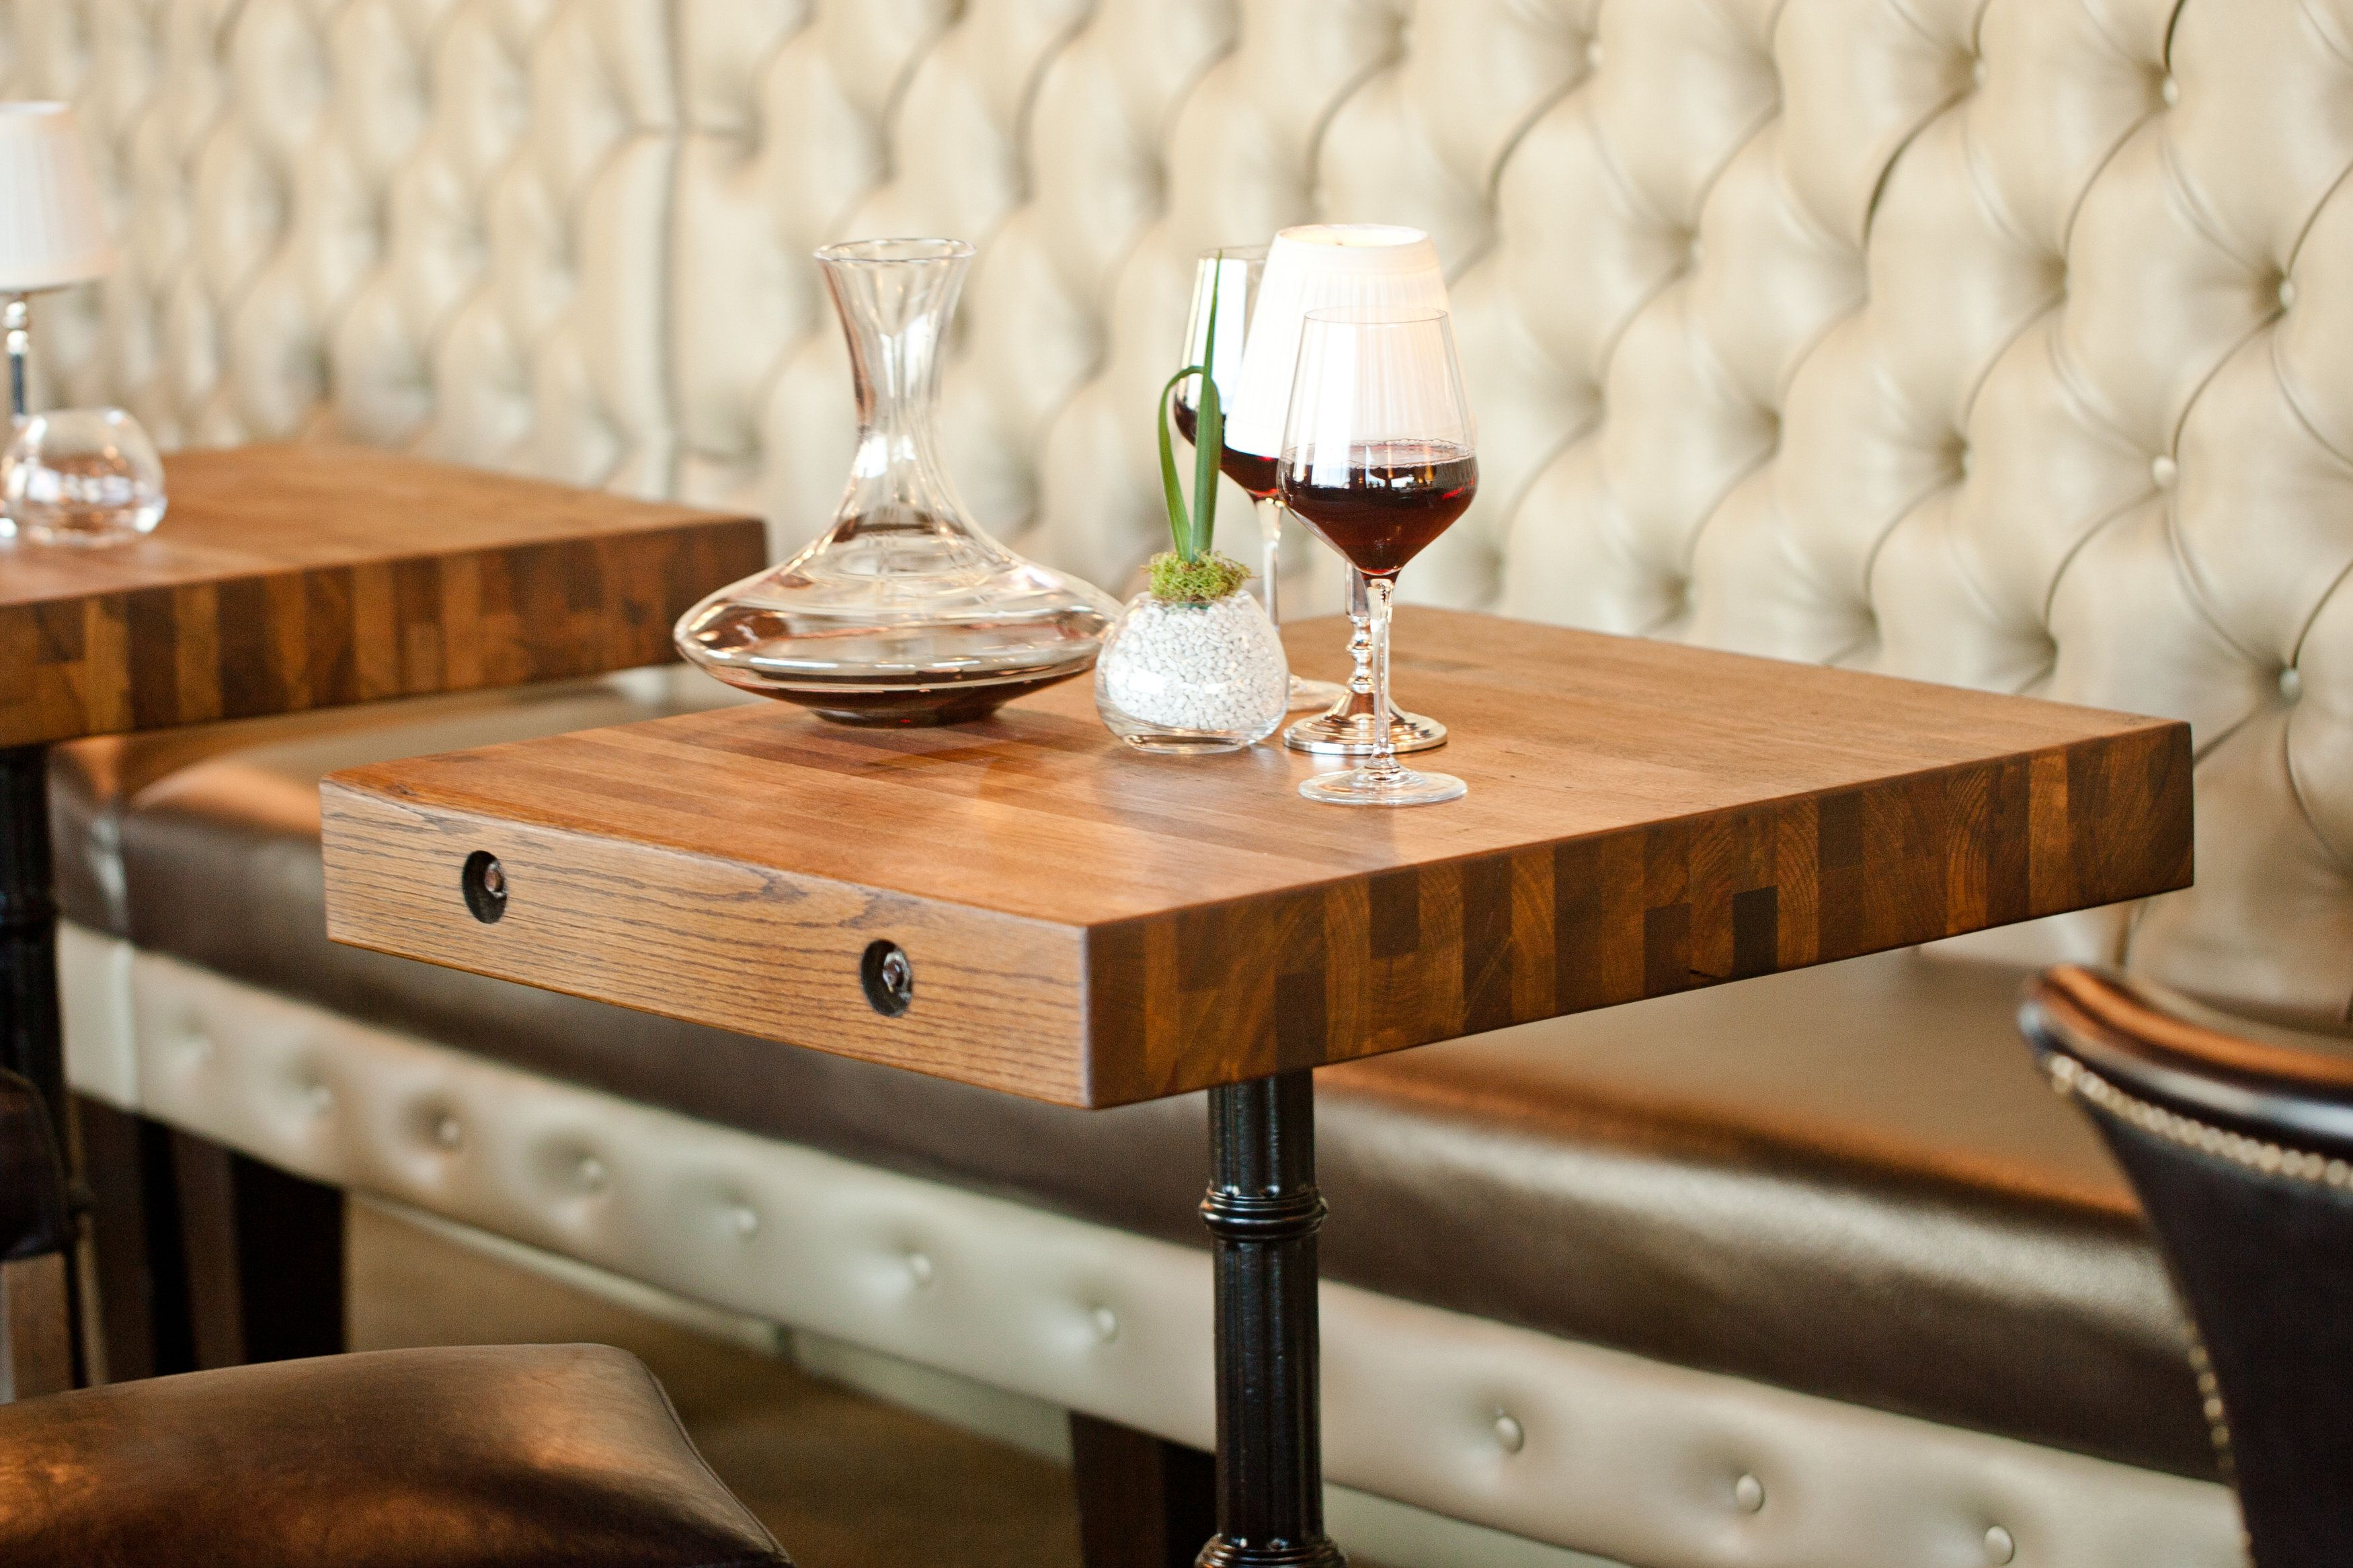 This Is A Reclaimed Oak Edge Grain Dining Tables That We Did For The Restaurant Called Number 13 In Galves